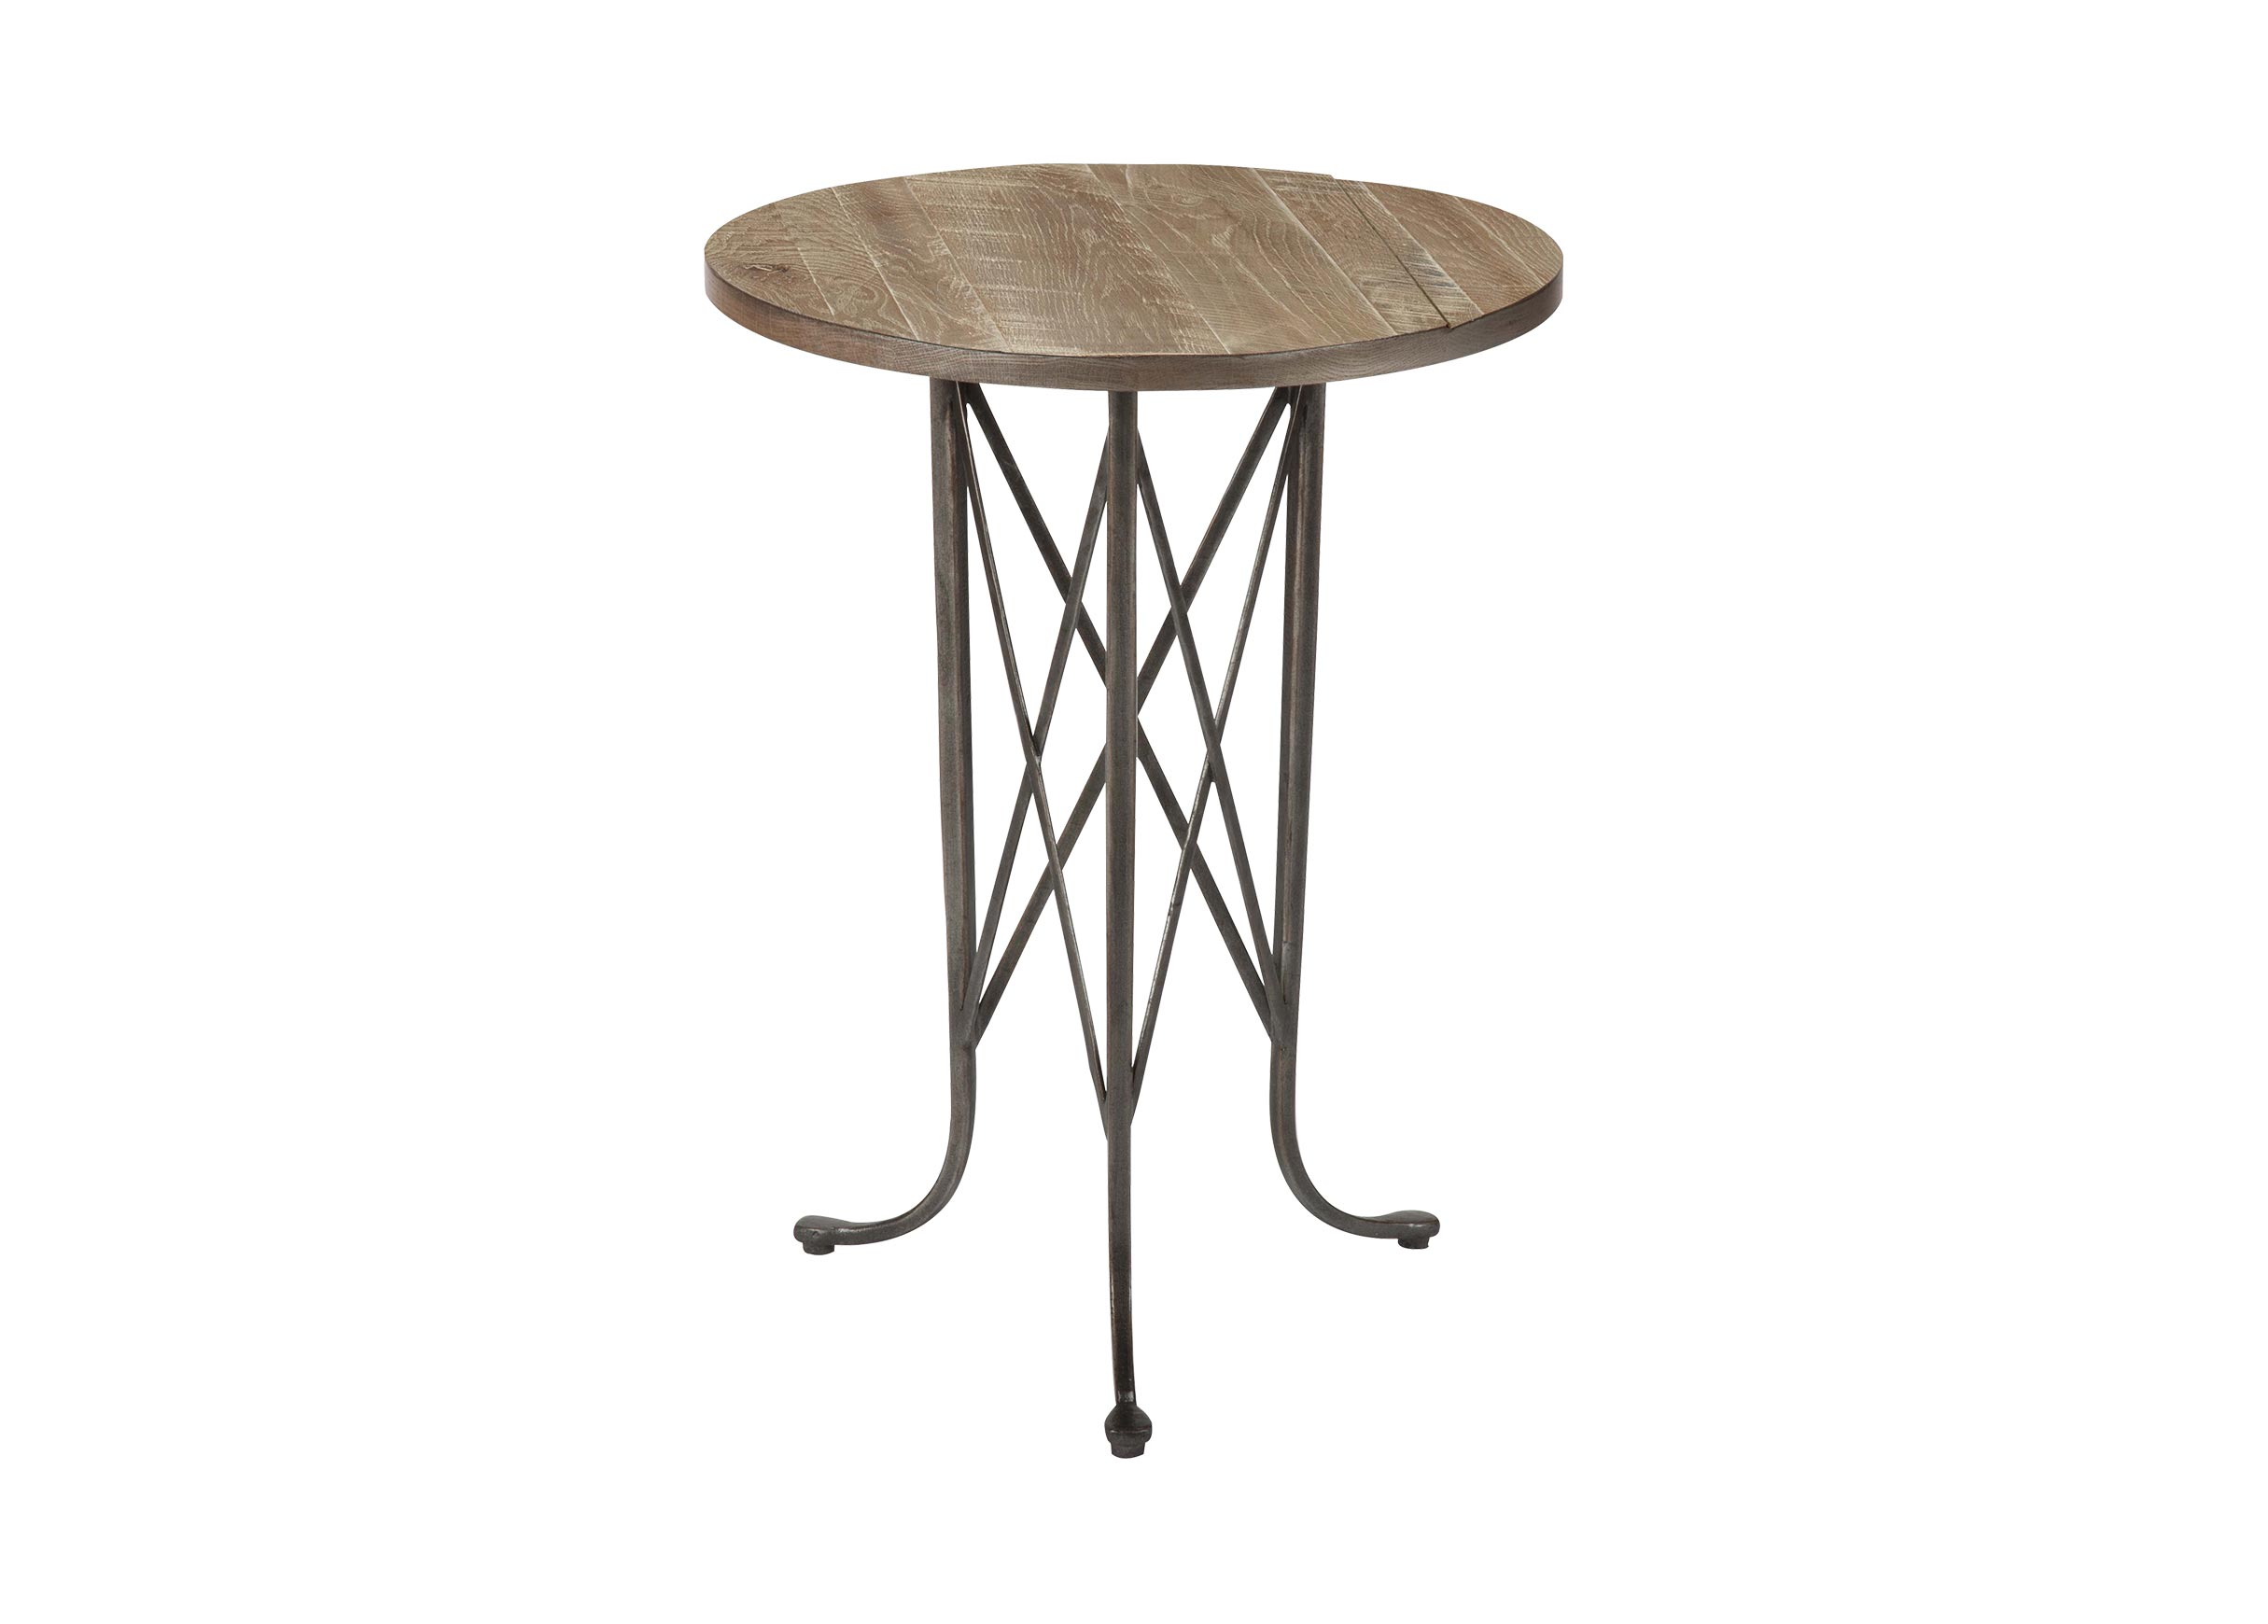 ethan allen pedestal end table tops ballan accent tables prefinished hardwood flooring small legs over the toilet storage target media console flannel backed vinyl tablecloth